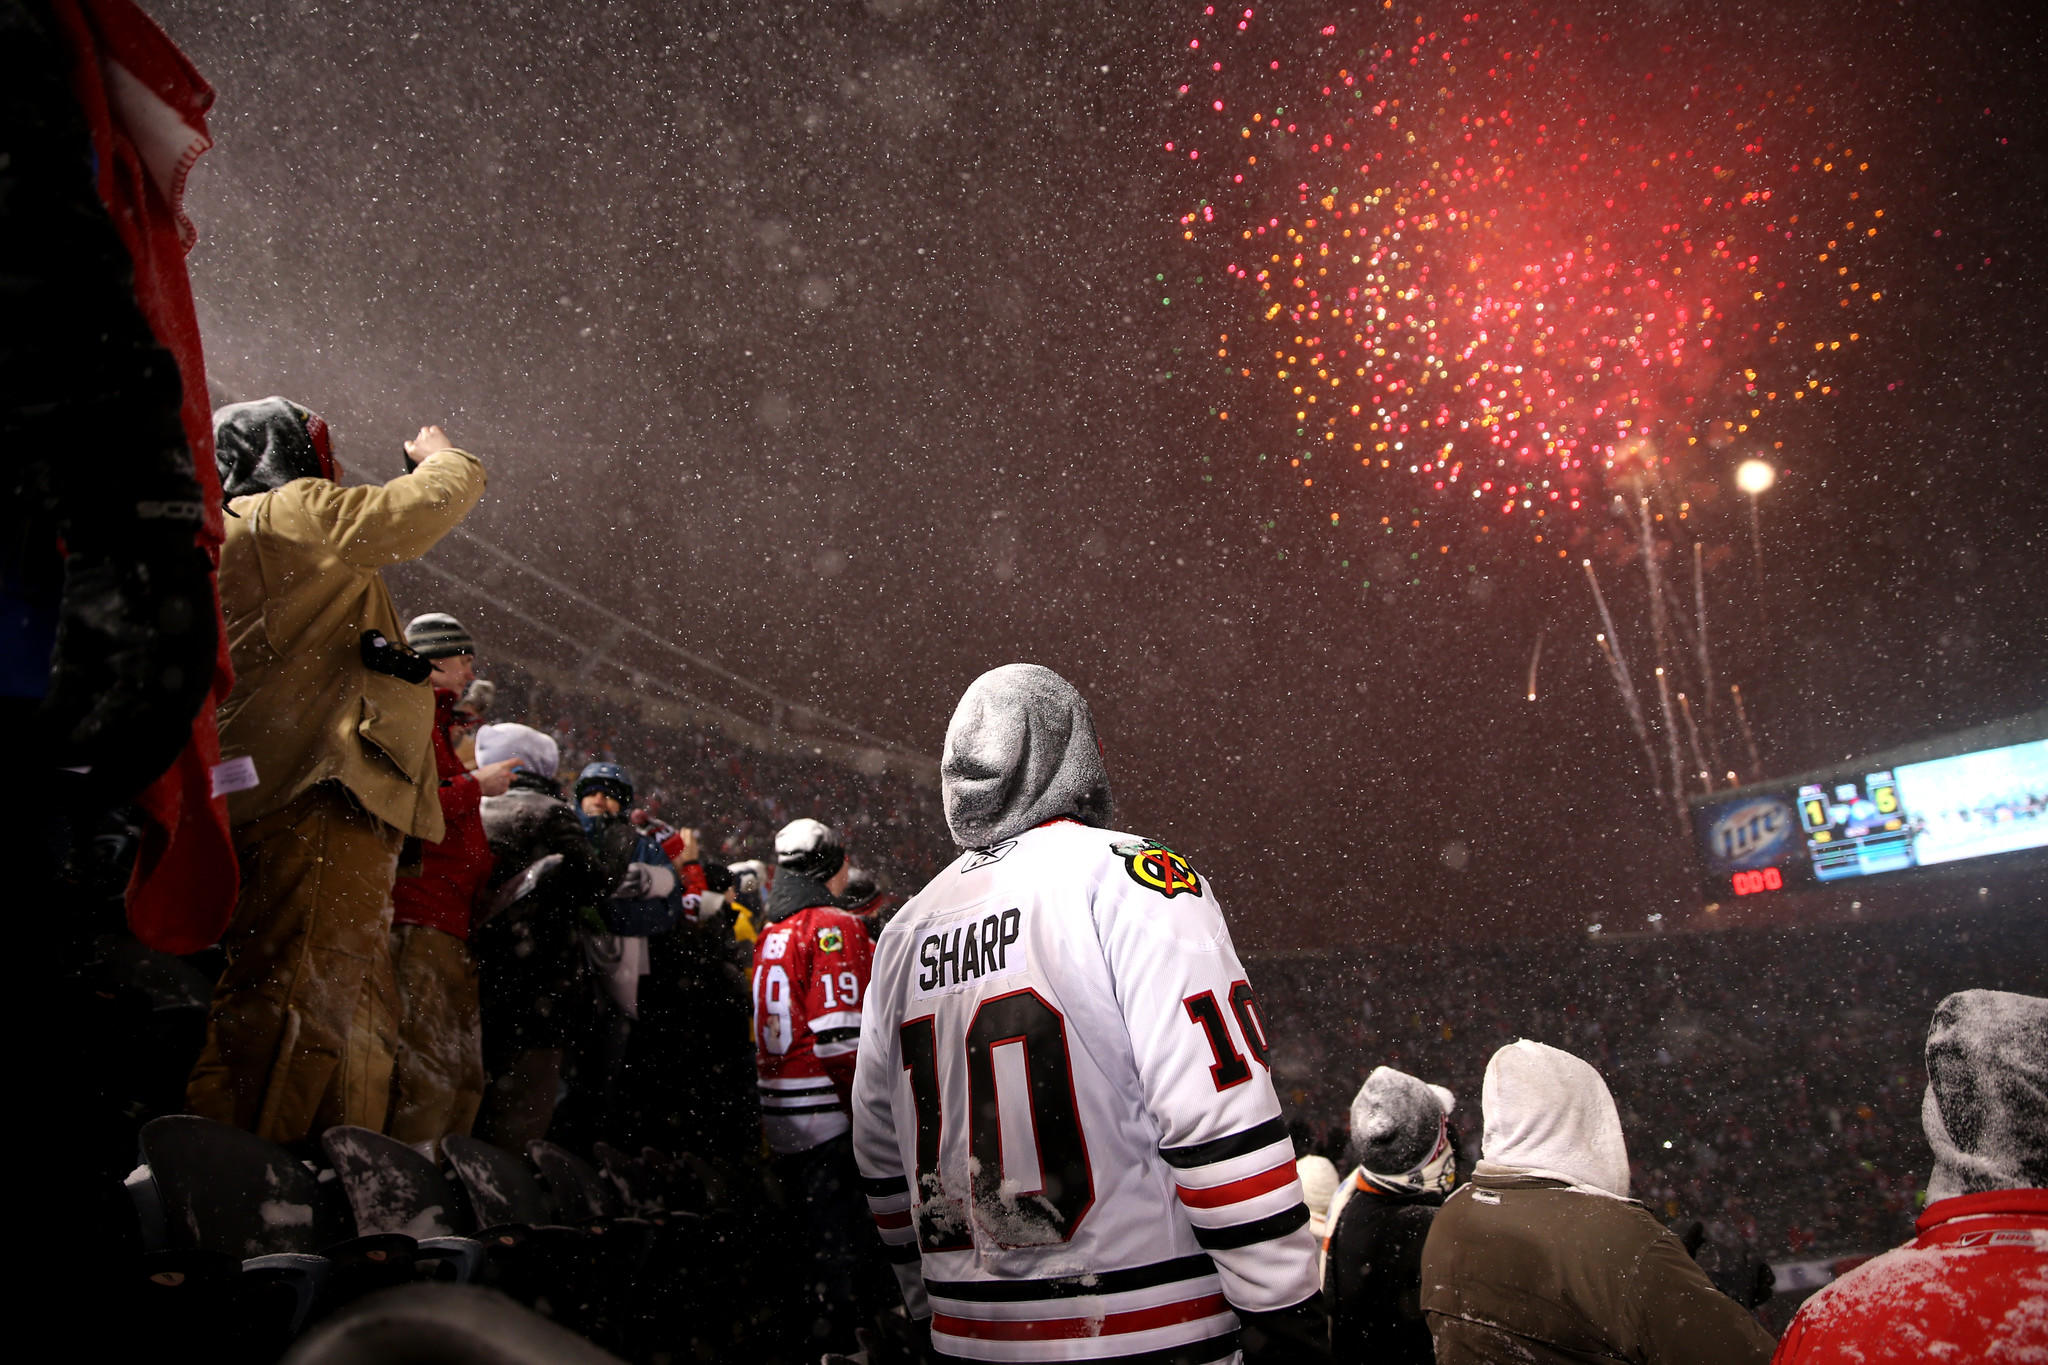 Fireworks are set off after a Chicago Blackhawks victory over the Pittsburgh Penguins.